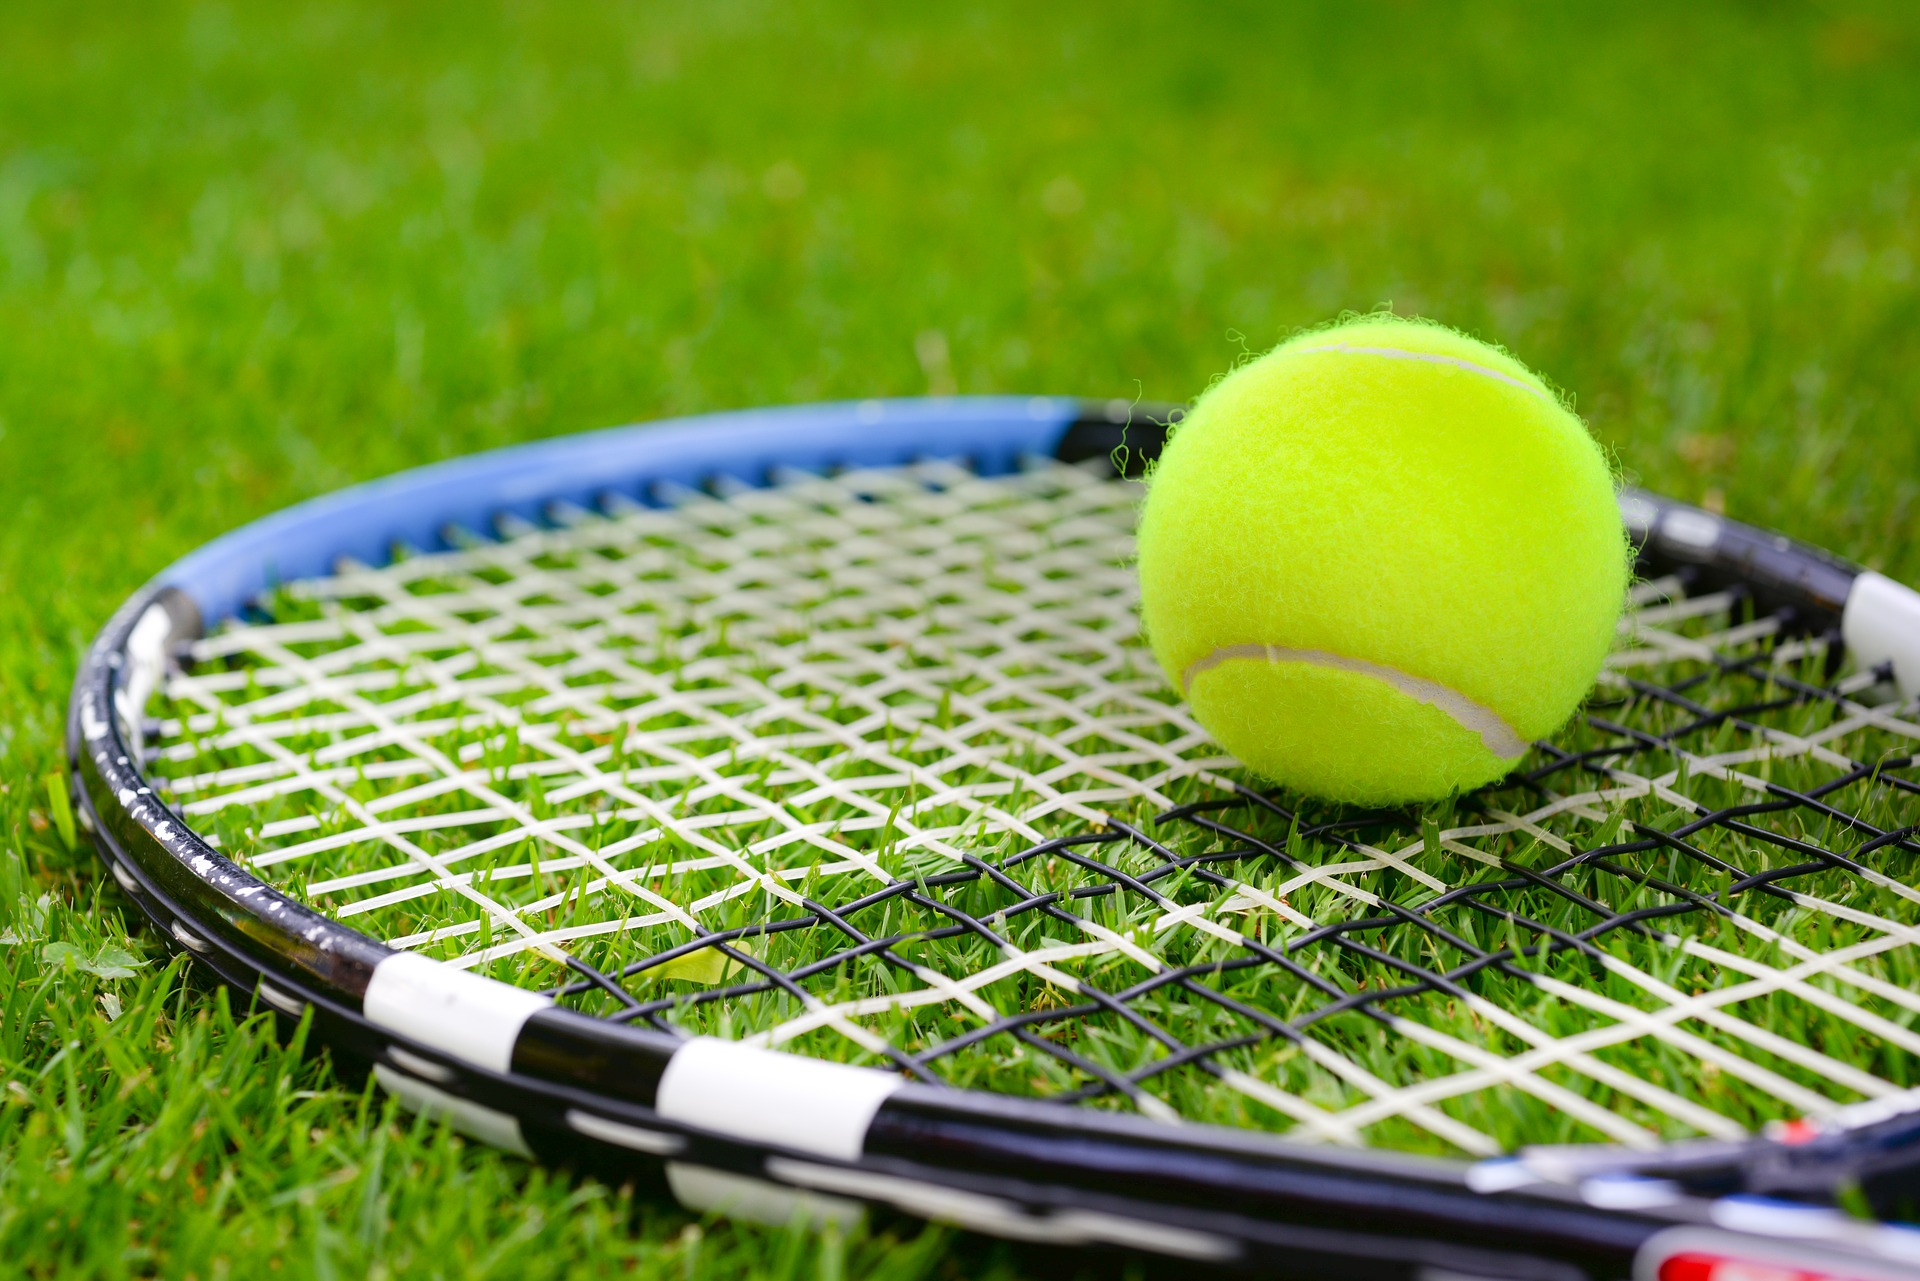 """"""" Tennis, ball, racket, sports, game """" by  Rudy and Peter Skitterians  is  Public Domain ."""